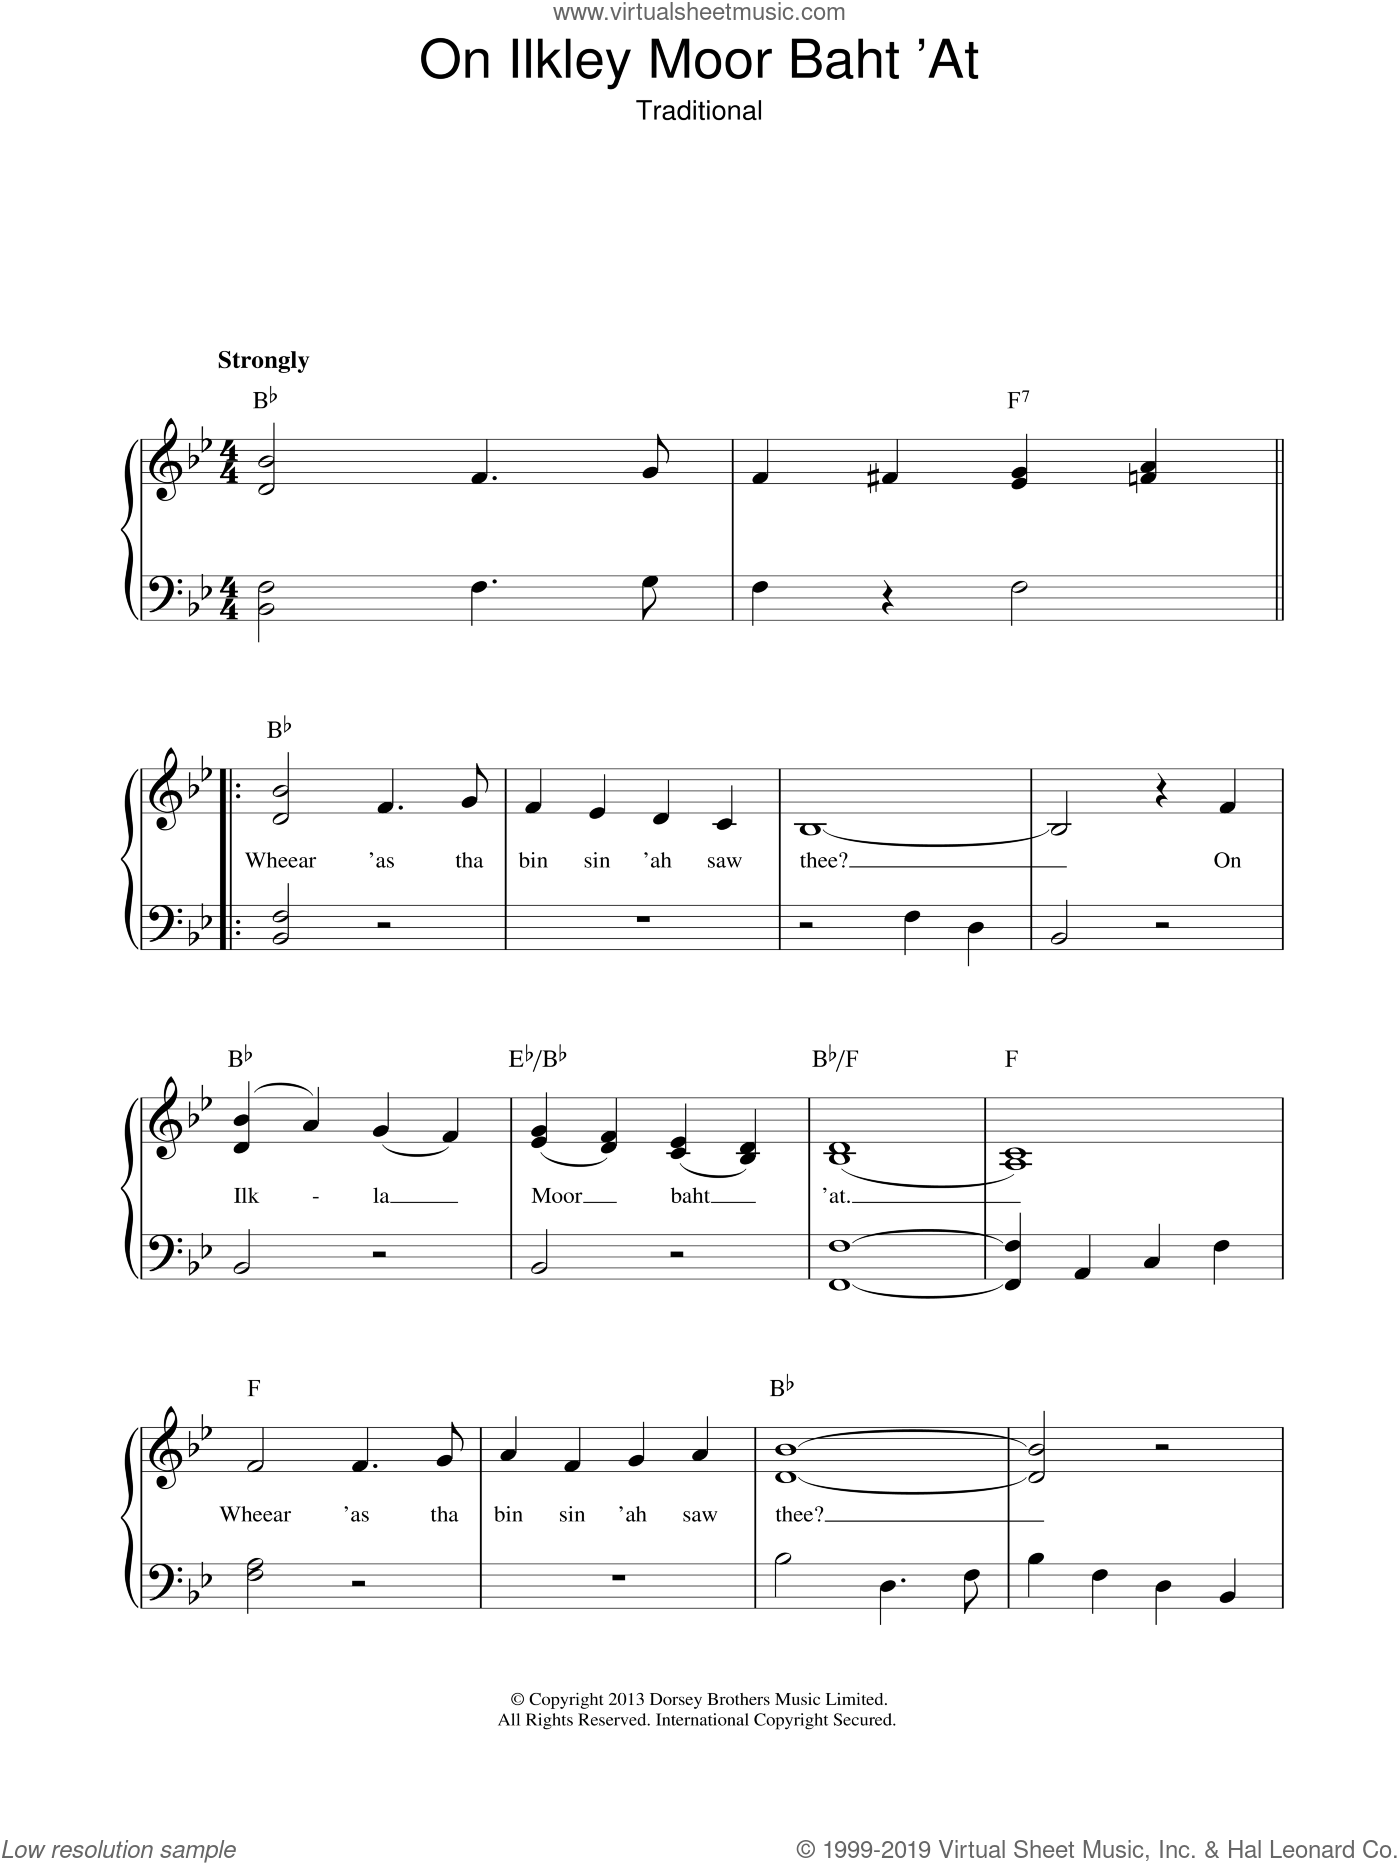 On Ilkley Moor Baht 'At sheet music for piano solo. Score Image Preview.